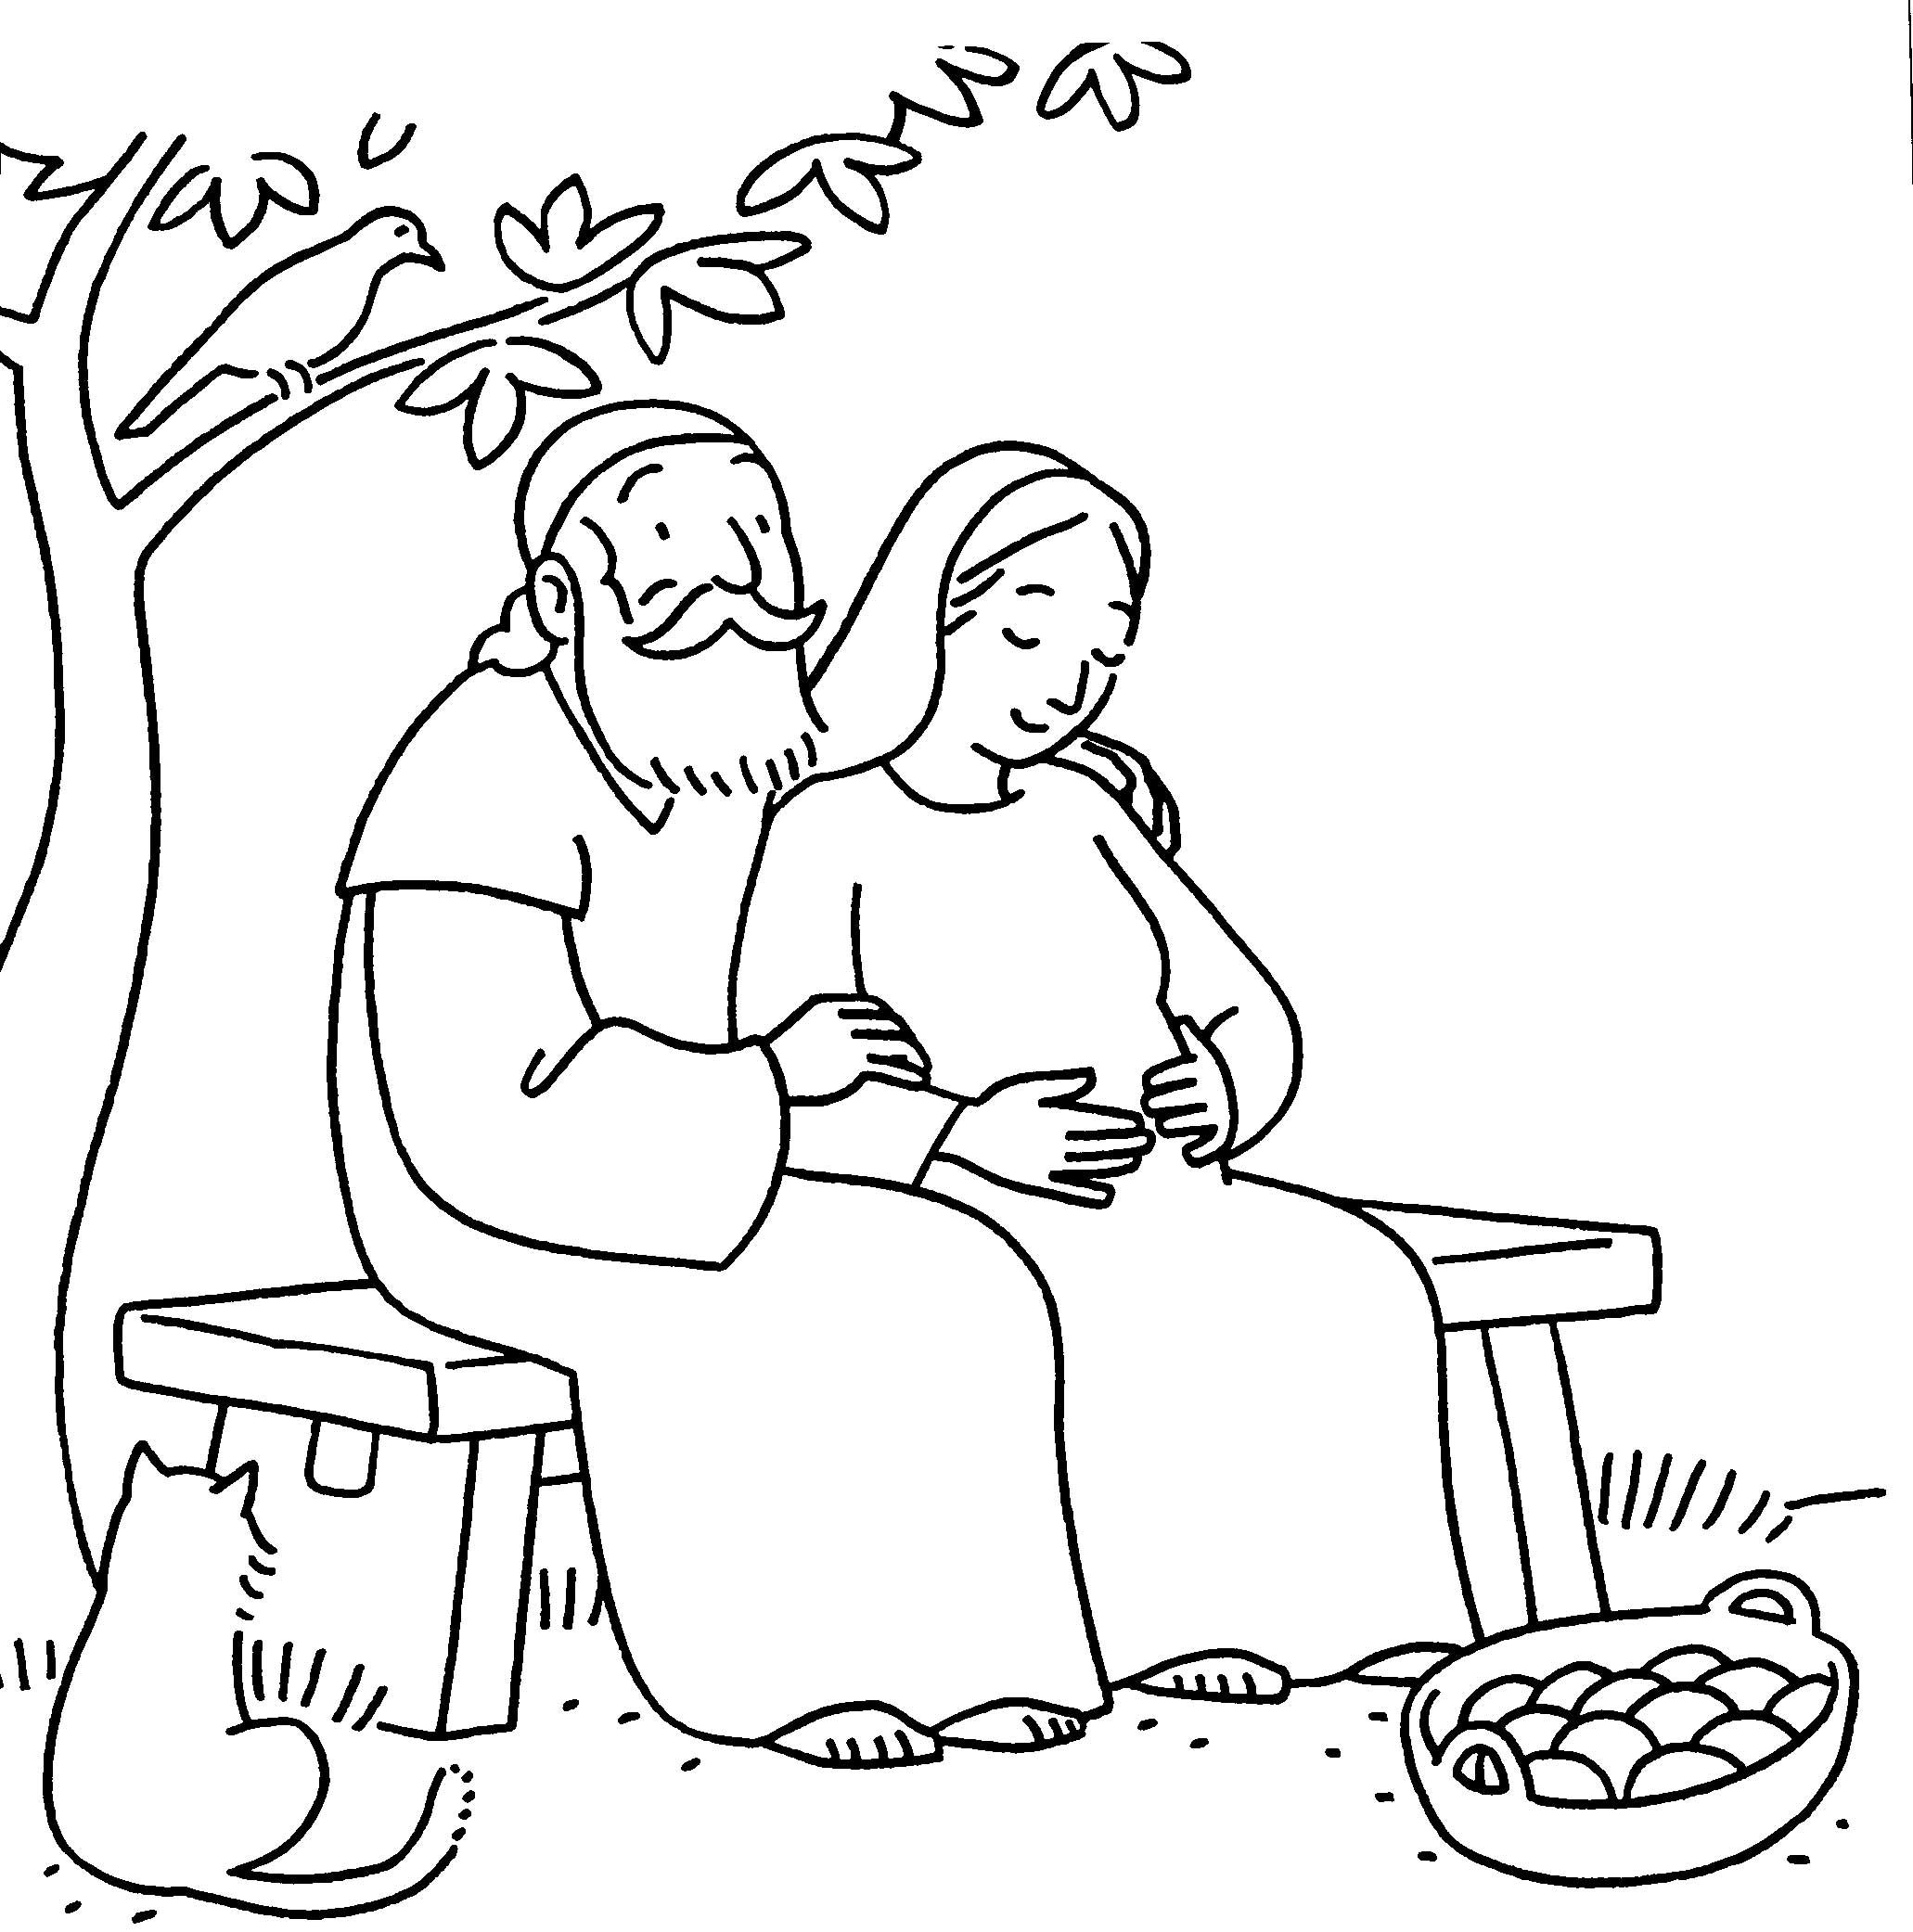 elizabeth and zechariah coloring pages free christian coloring pages for kids and young children coloring zechariah elizabeth pages and